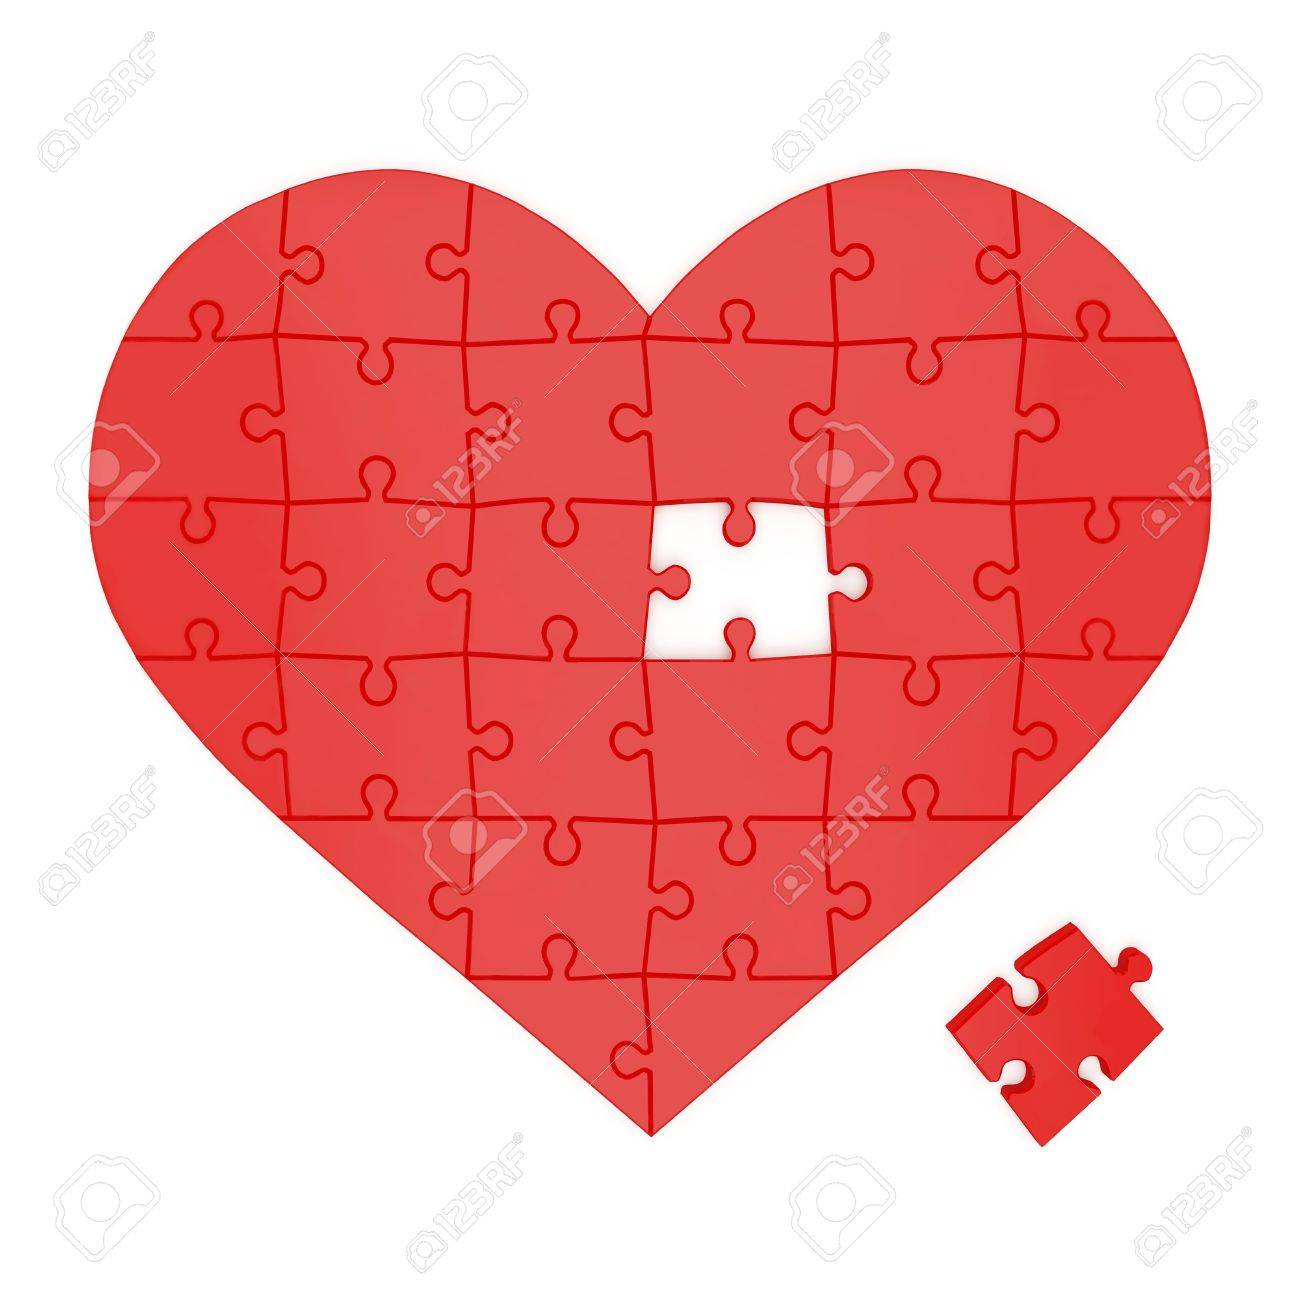 Red heart made of puzzles on a white background Stock Photo - 11321563